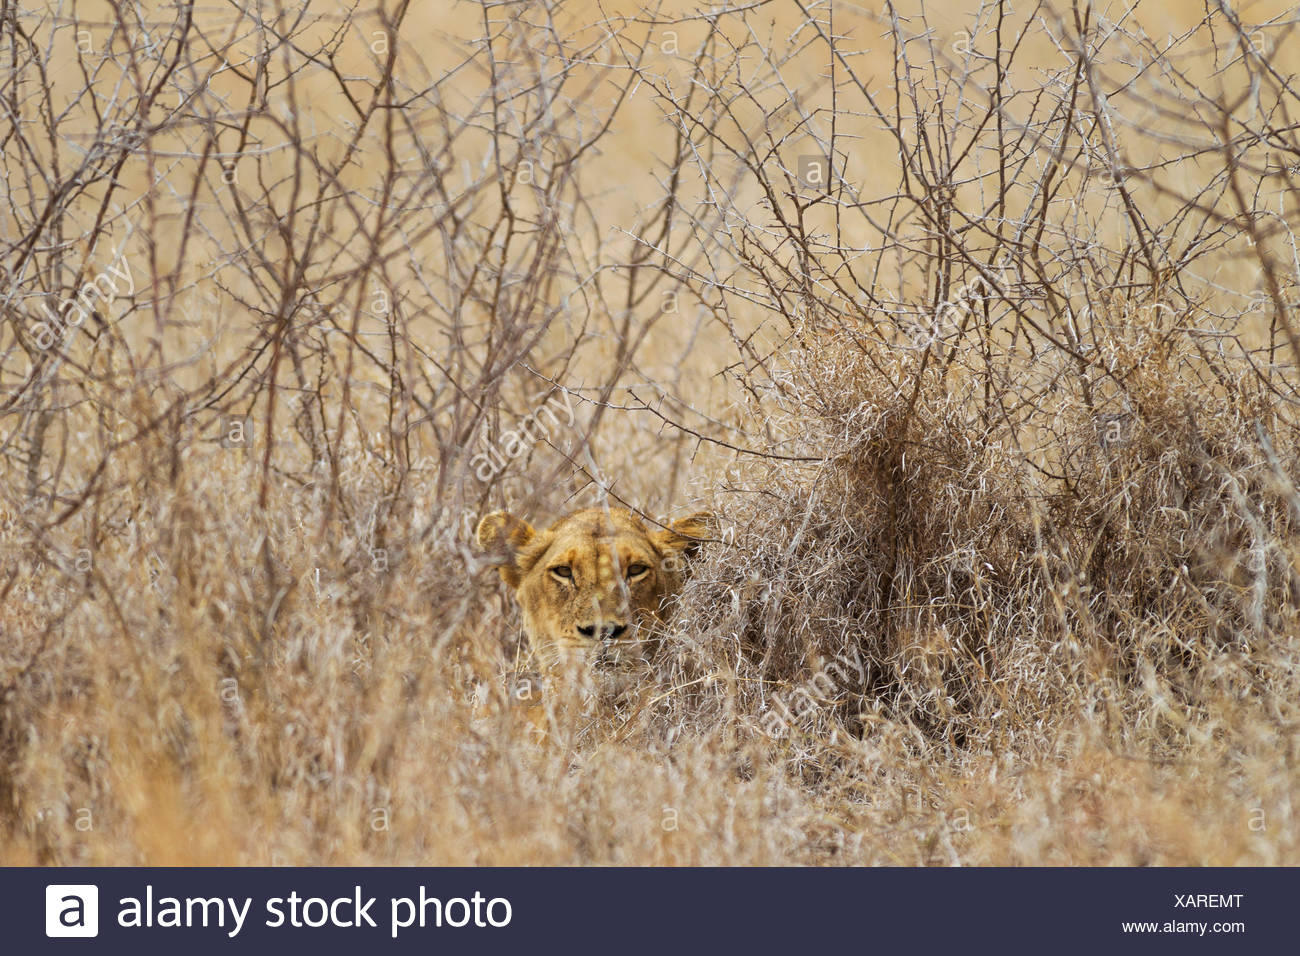 Lioness (Panthera leo), hidden, observes her surroundings, Kruger National Park, South Africa - Stock Image